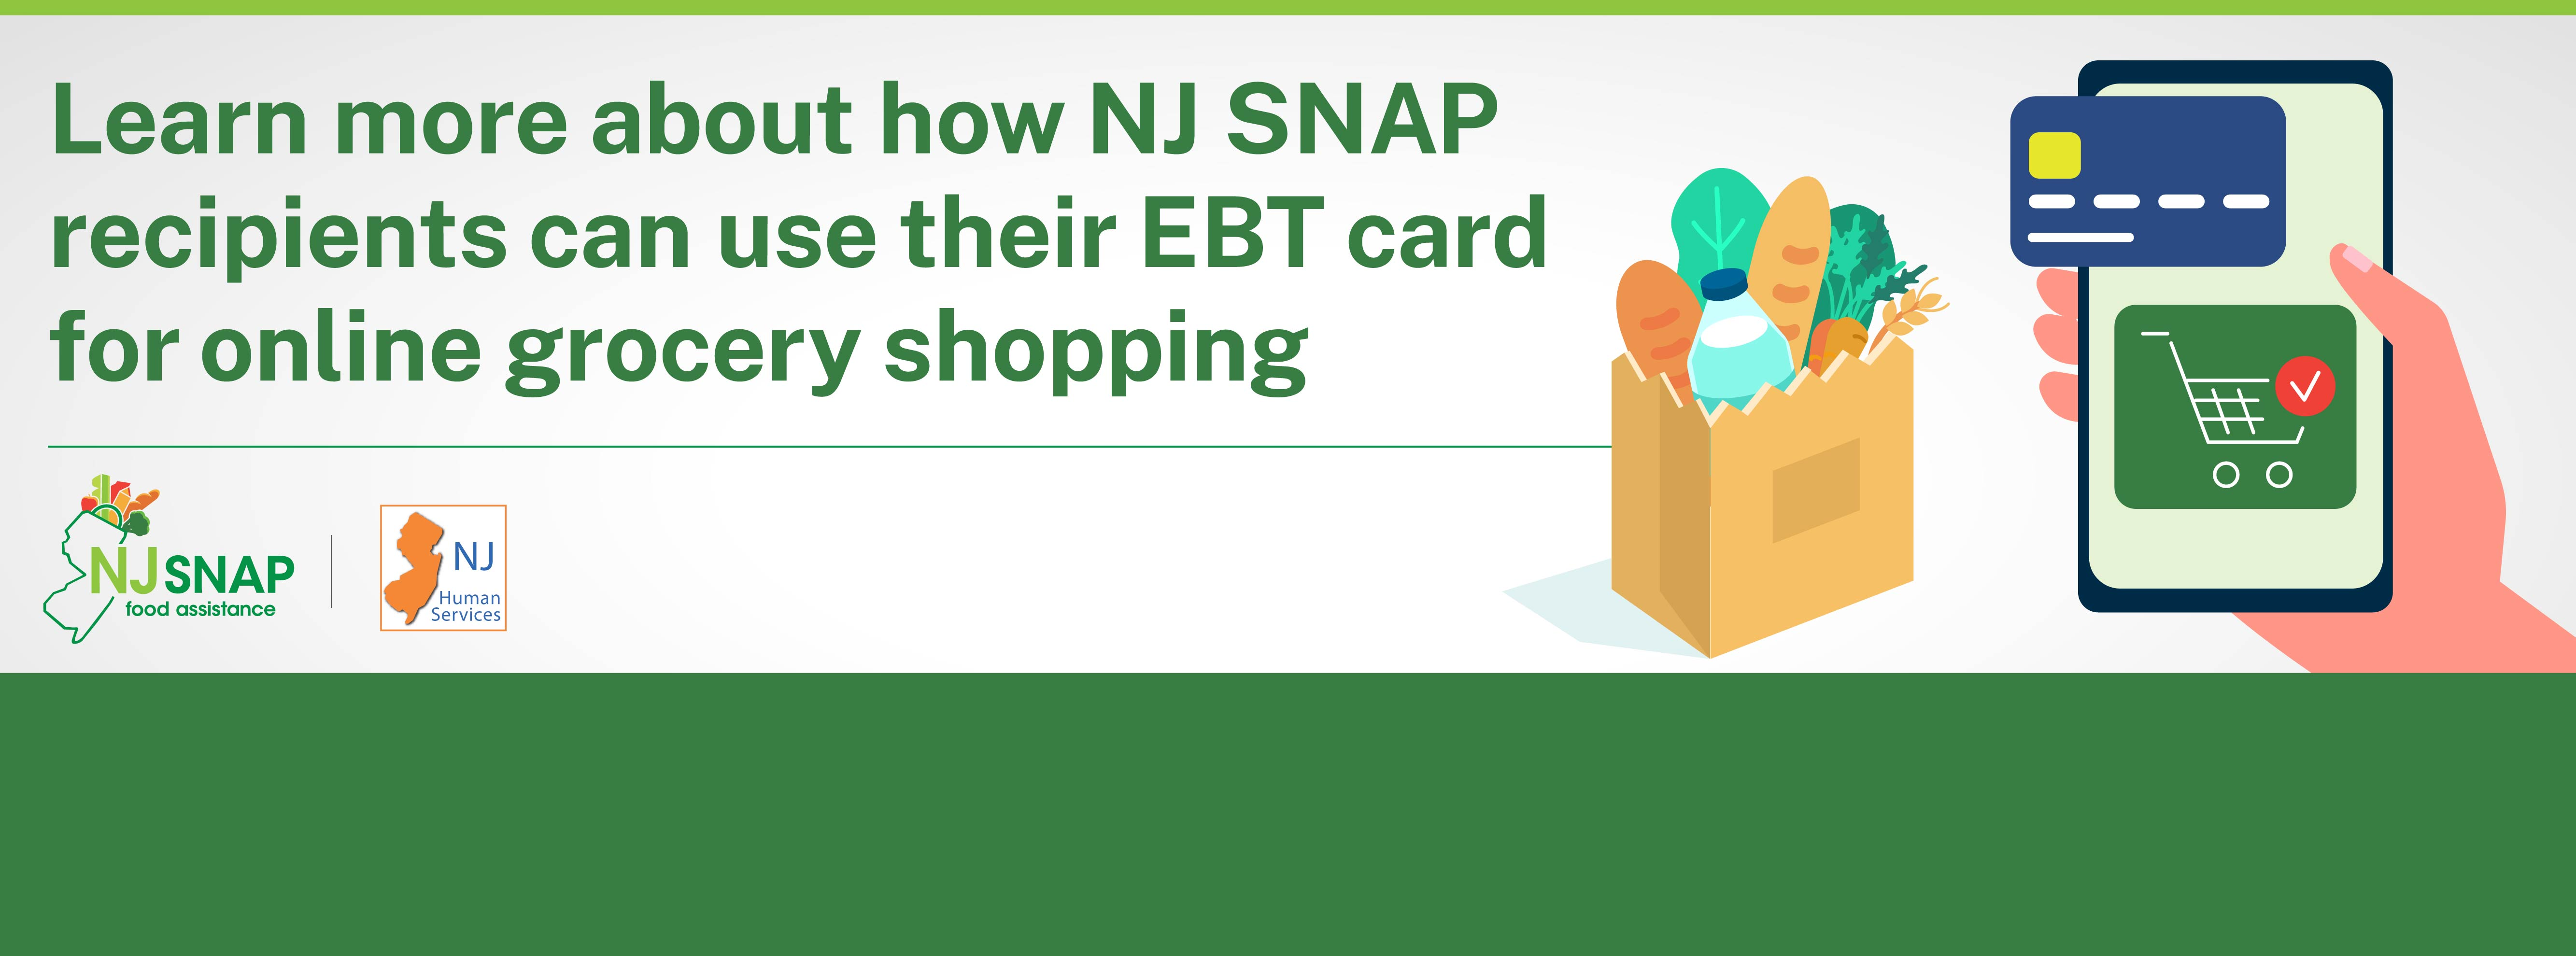 NJ SNAP recipients will be able to use their benefits card to order groceries from Amazon starting on May 27. Walmarts, ShopRites and The Fresh Grocers that that provide online shopping will also accept online ordering with SNAP benefits starting on